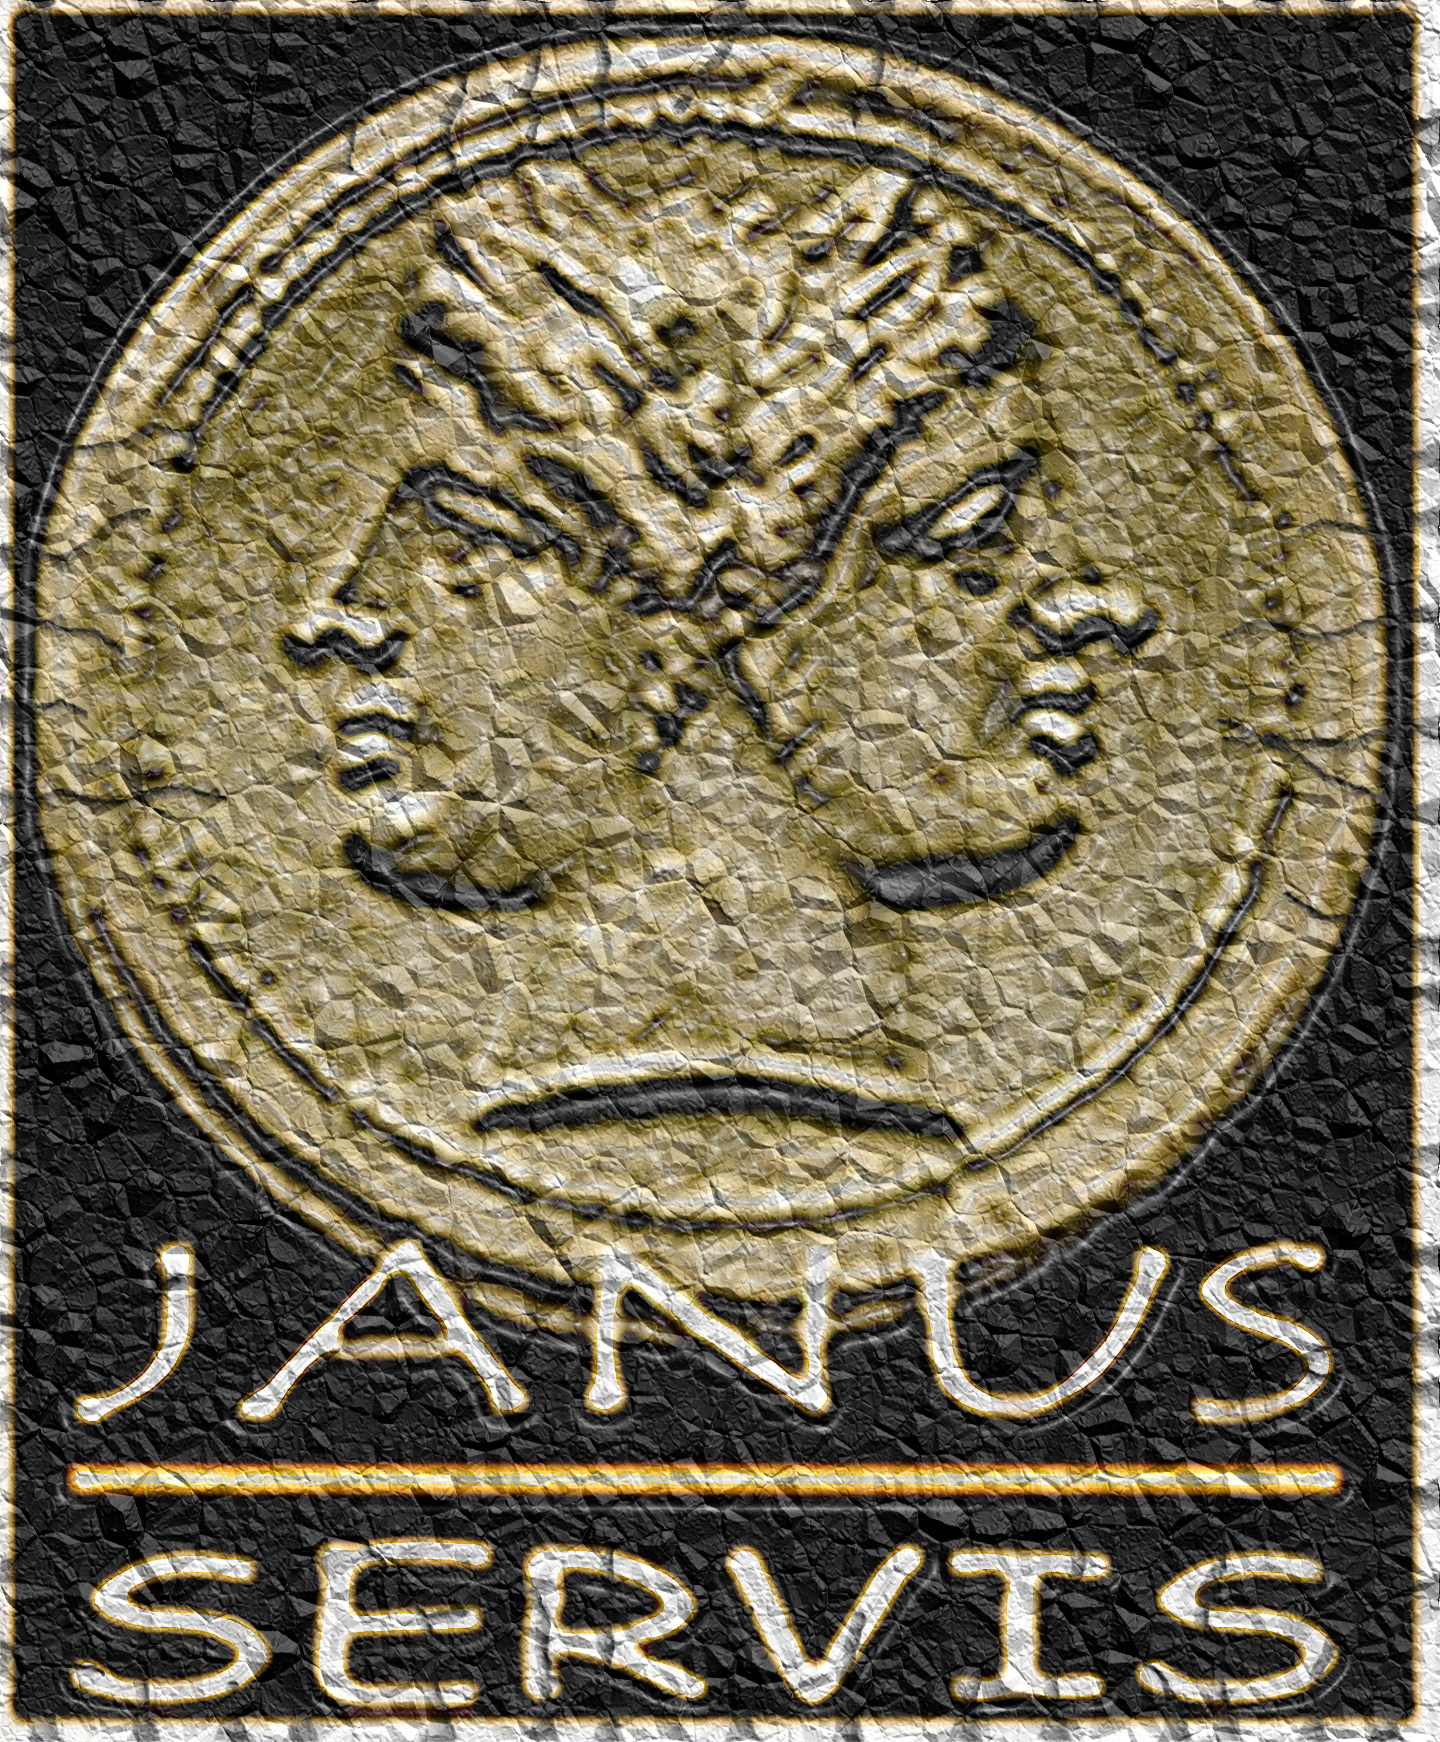 double essay face history in janus medicine other